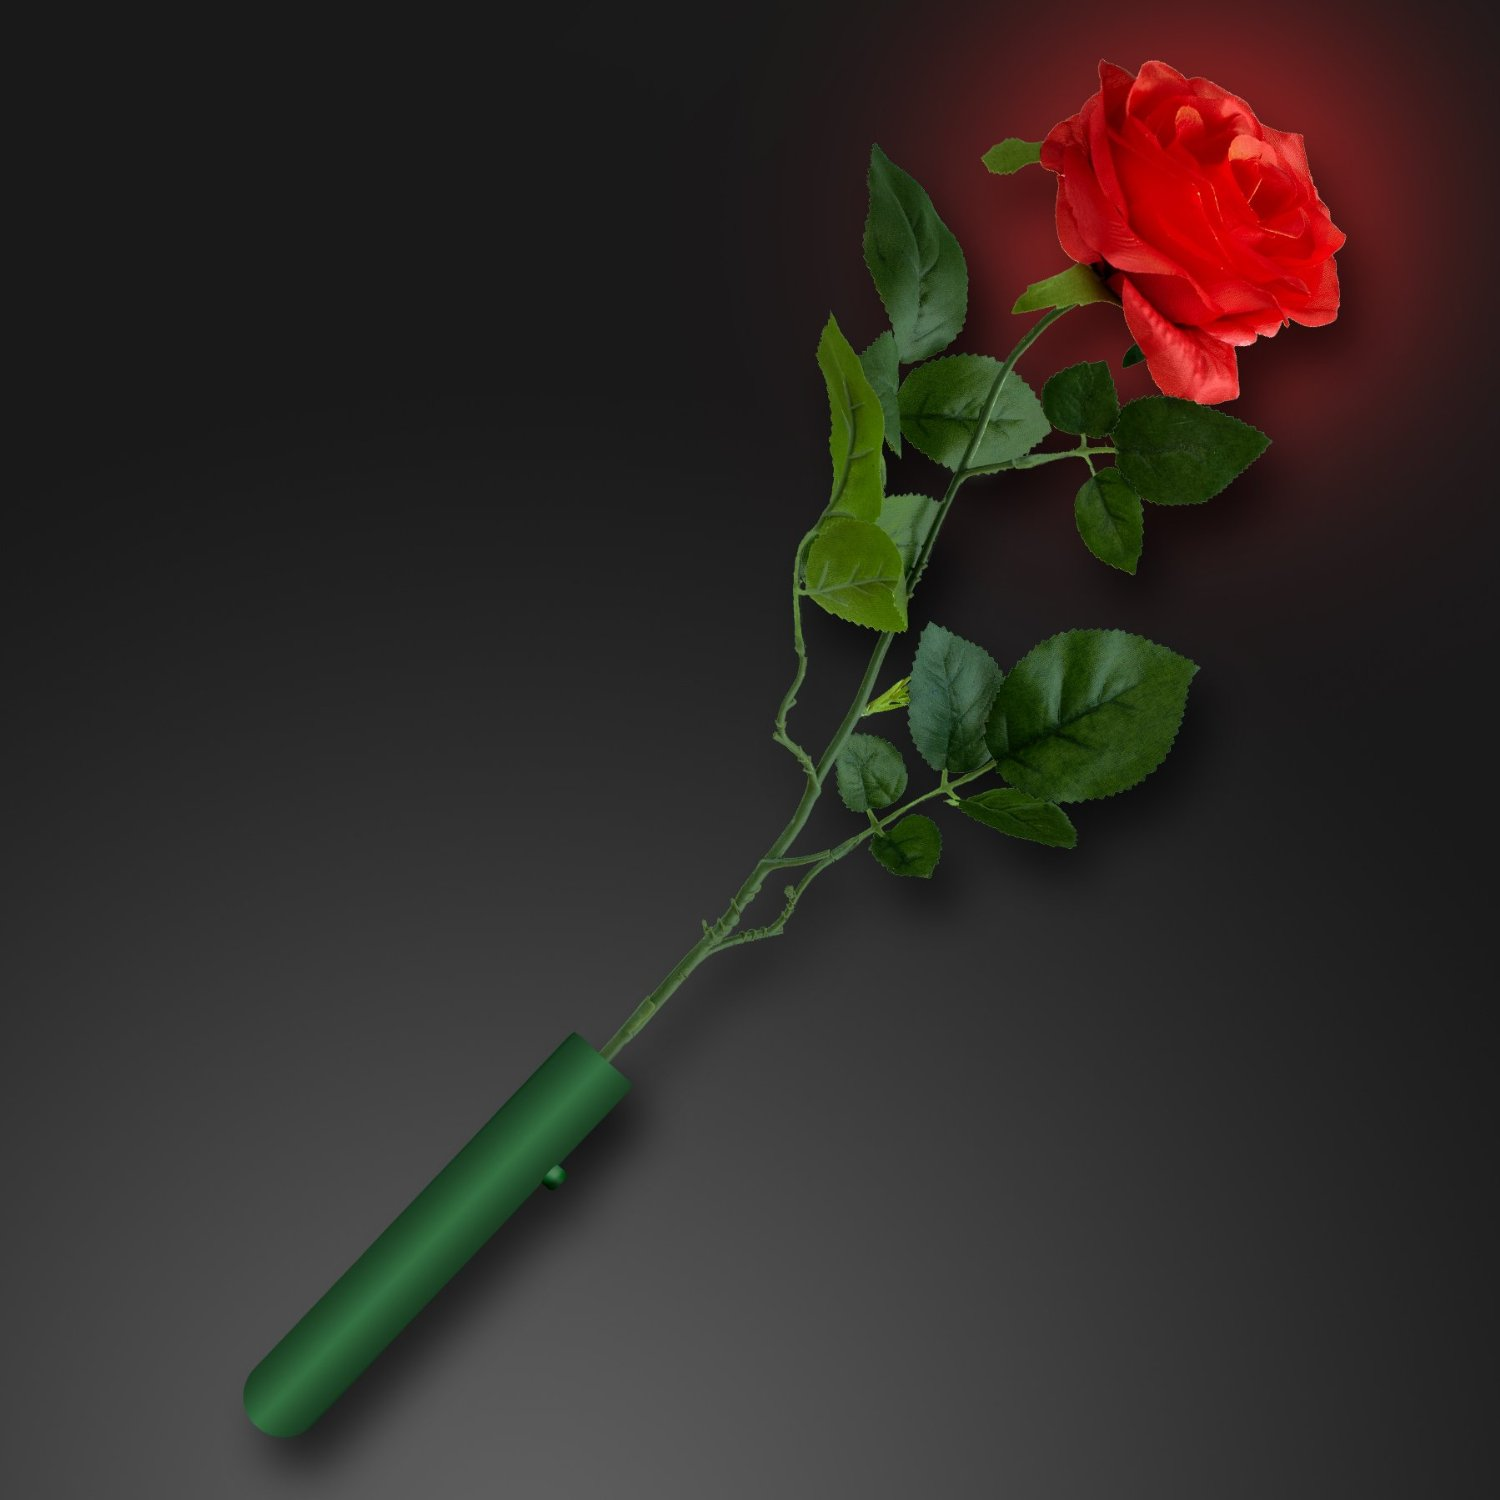 LED Light Up Glowing Red Rose